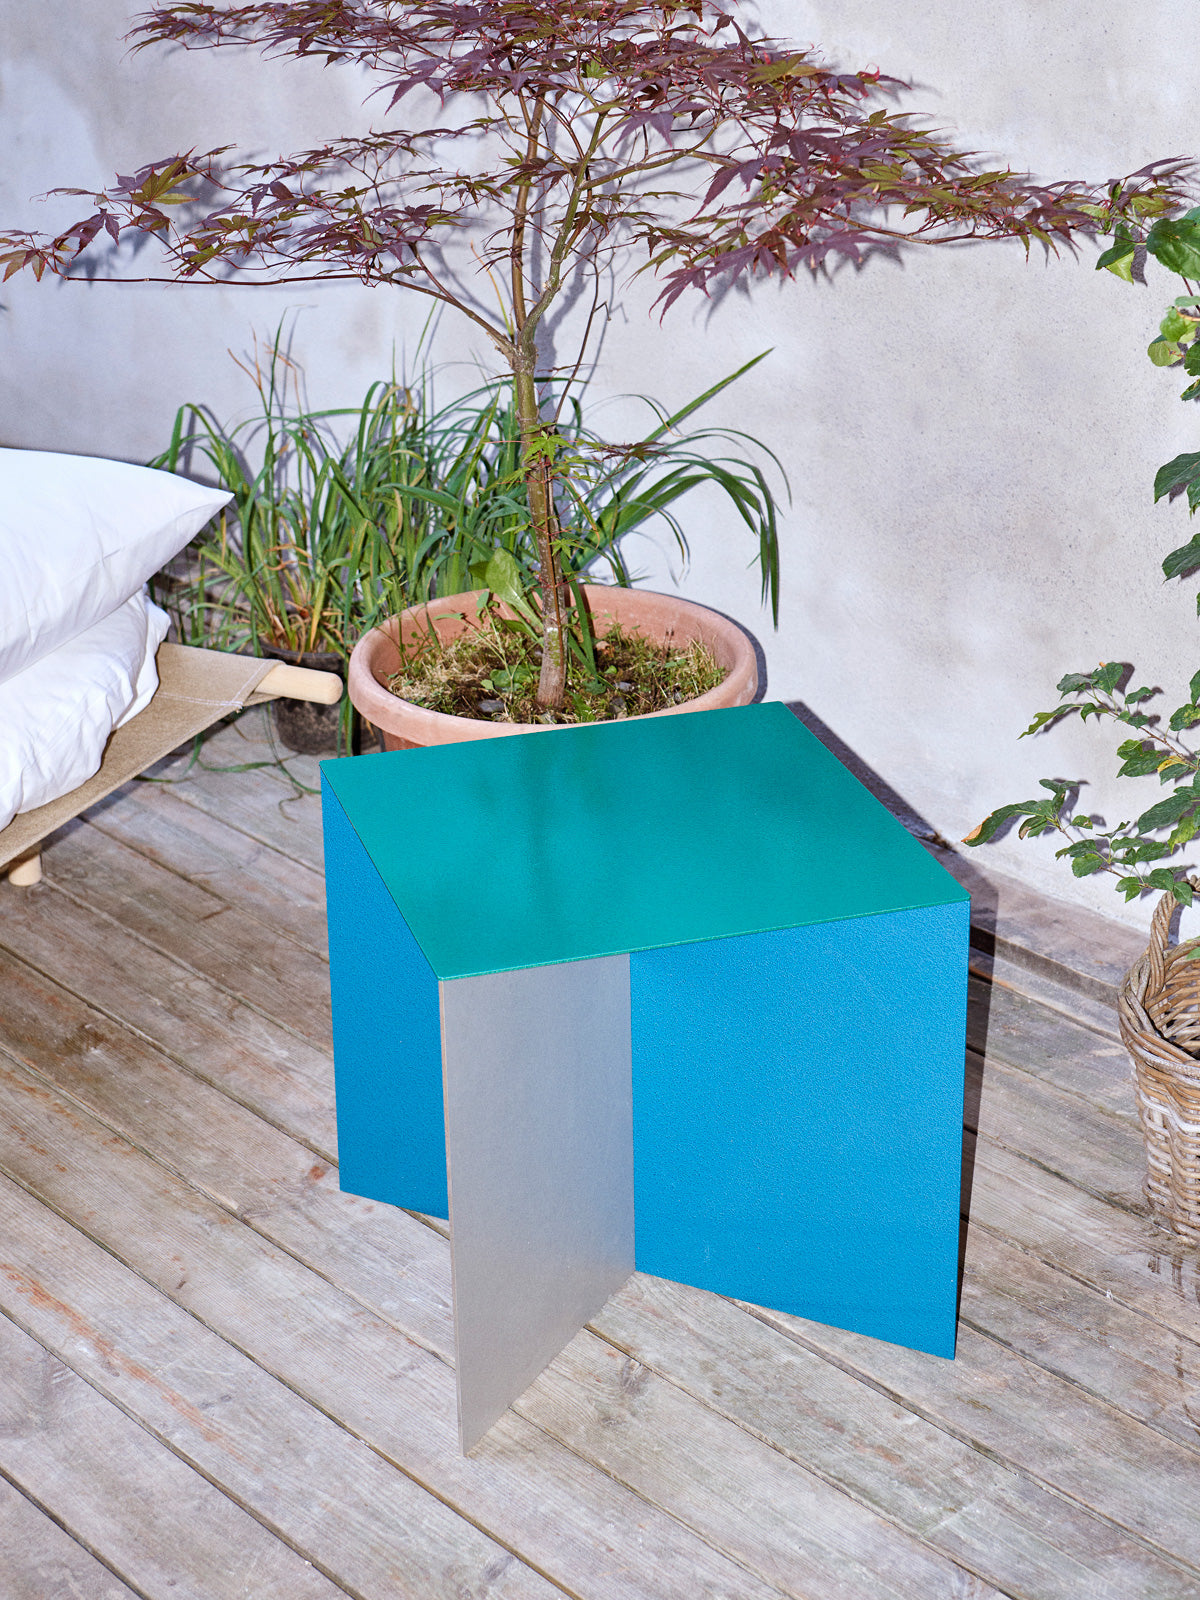 Valerie Objects Alu Square by Muller van Severen